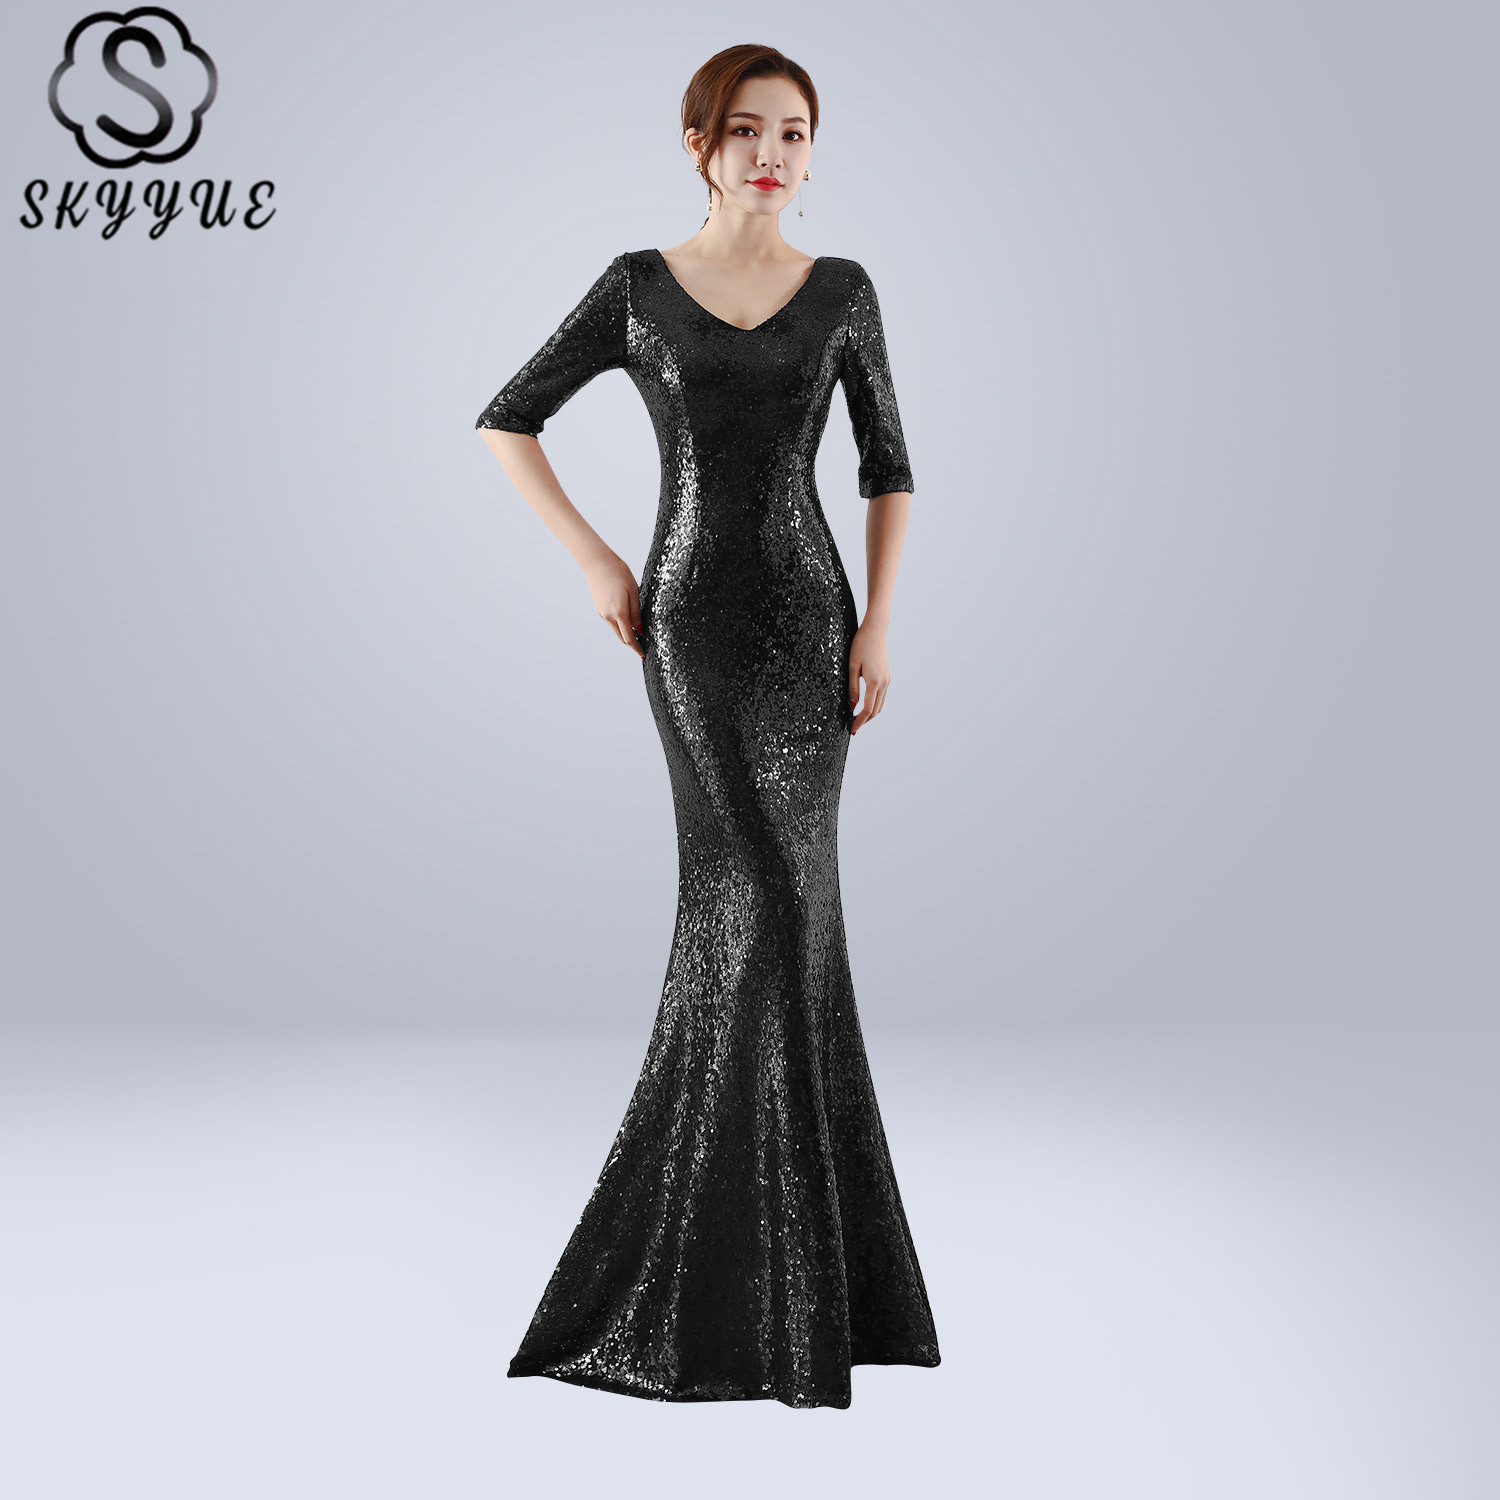 Skyyue Evening Dress Solid Half-sleeve Women Party Dresses Elegant Zipper Robe De Soiree 2019 V-neck Sequin Formal Gowns C259